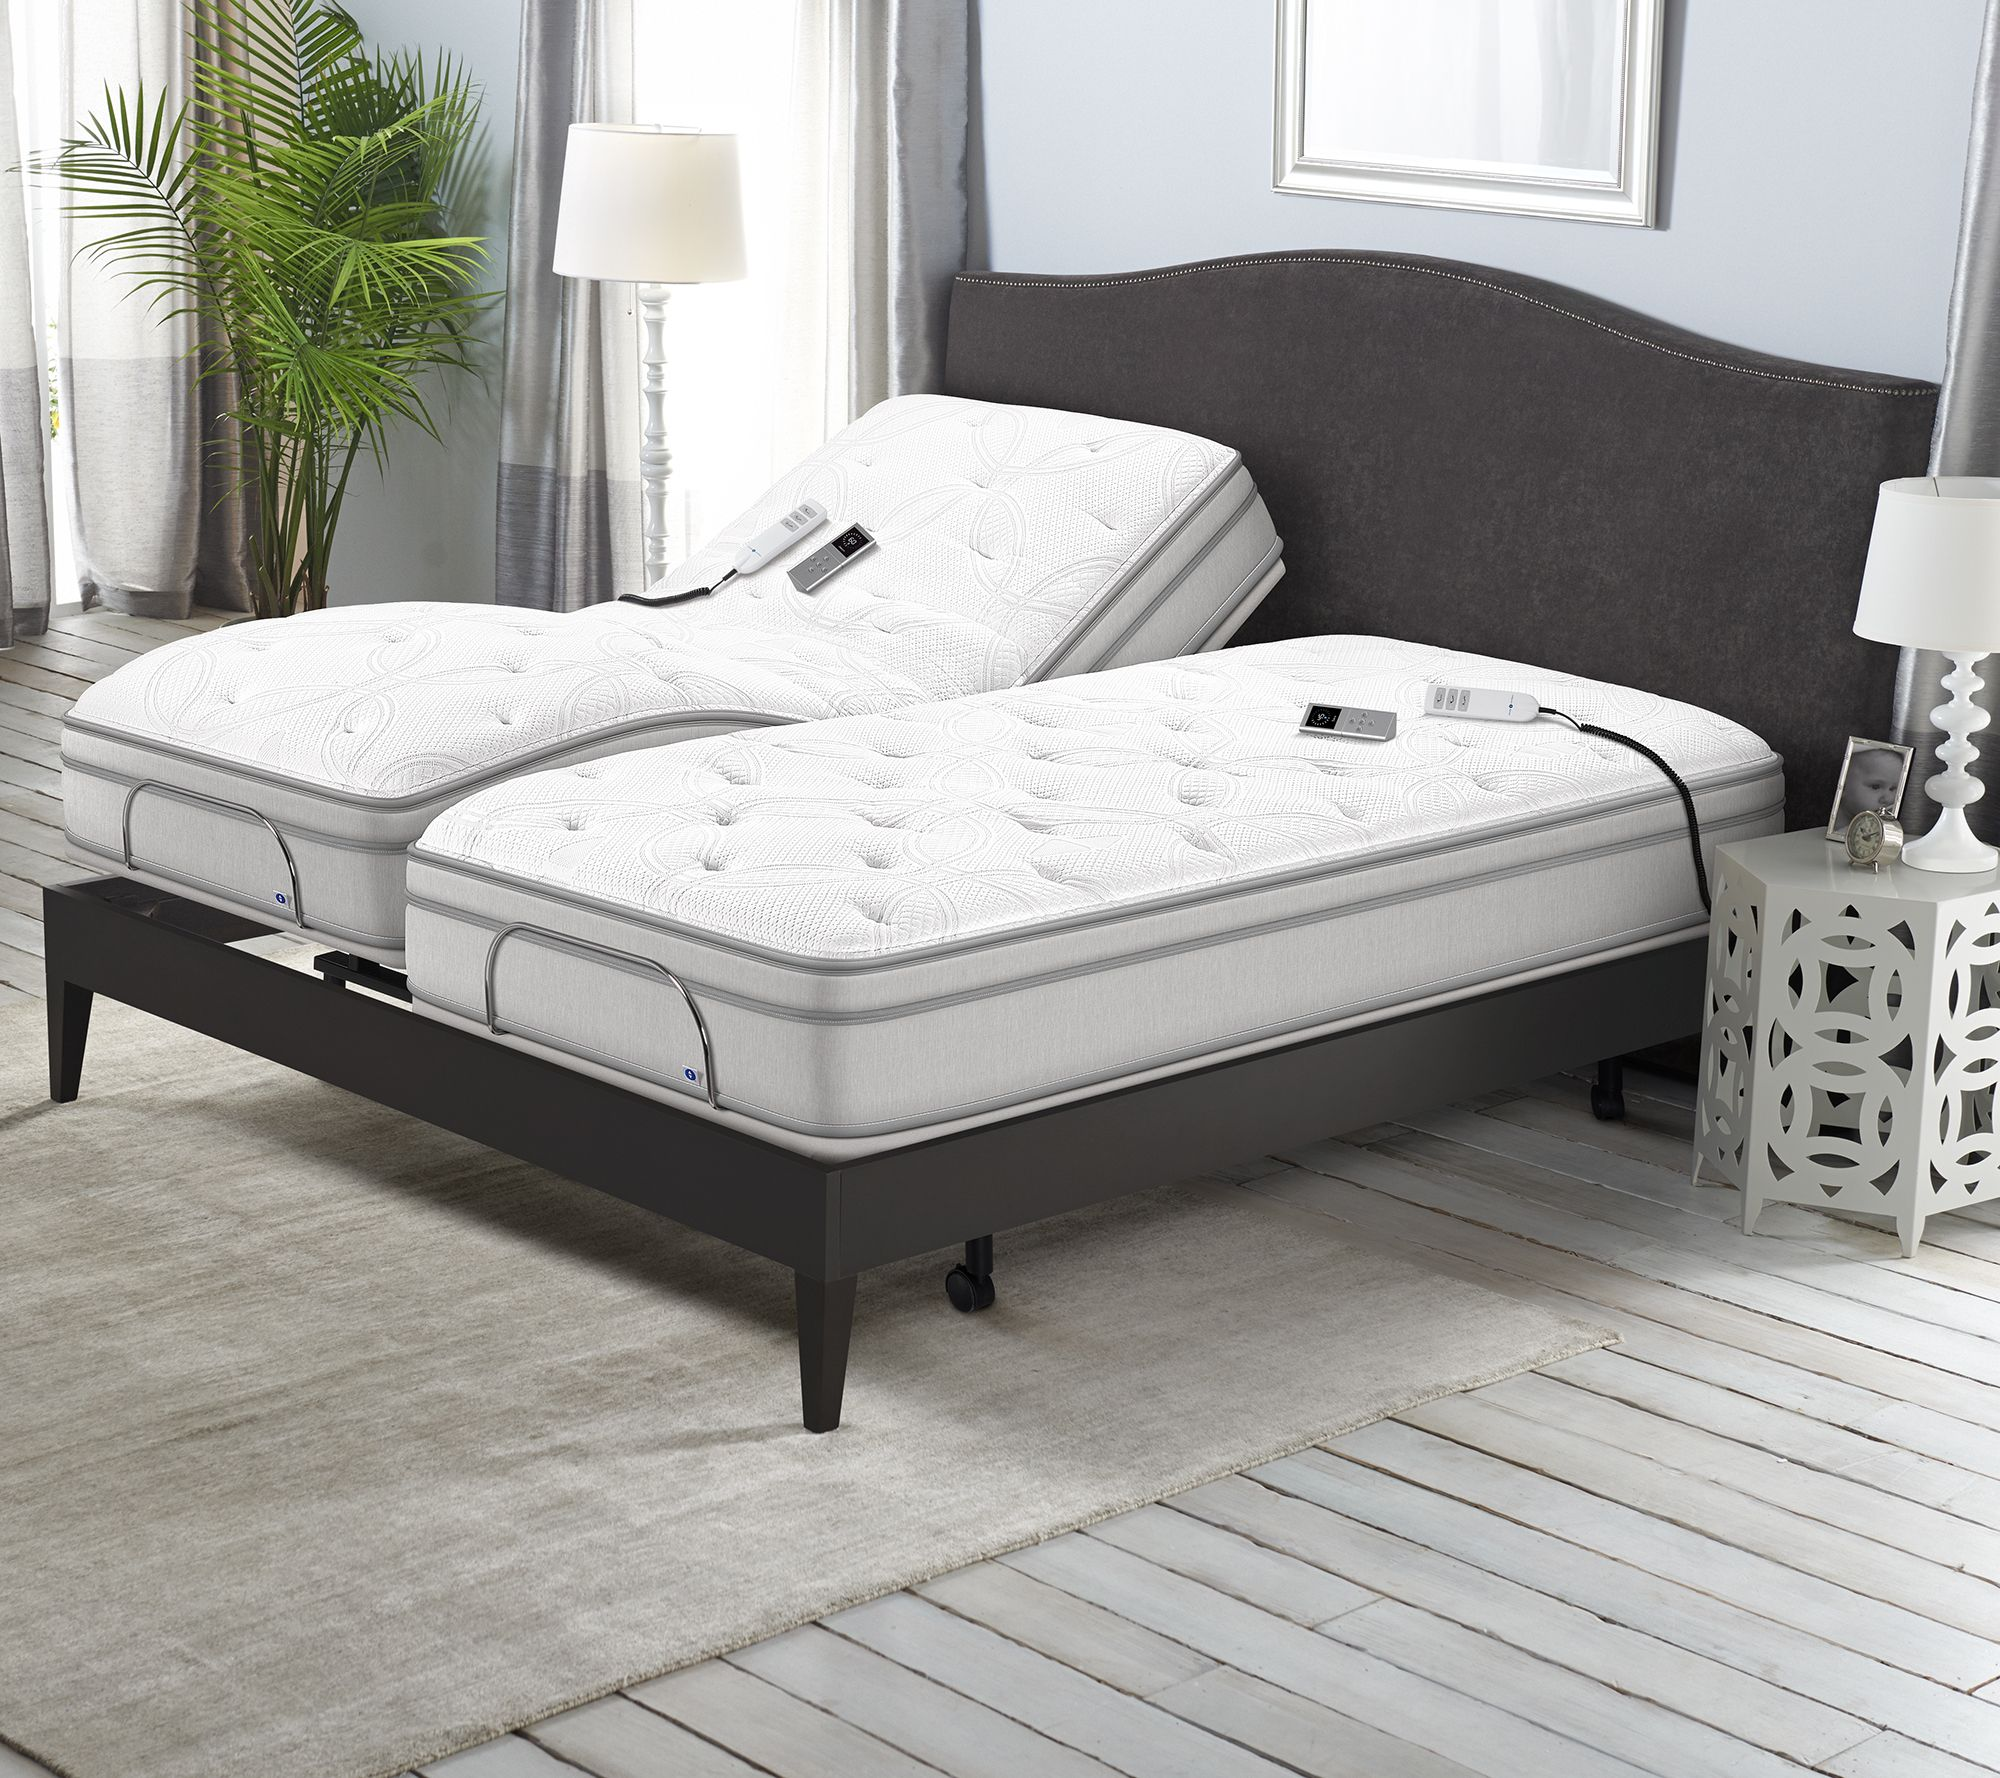 Sleep Number P5 Split King Adjustable Base Mattress Set Page 1